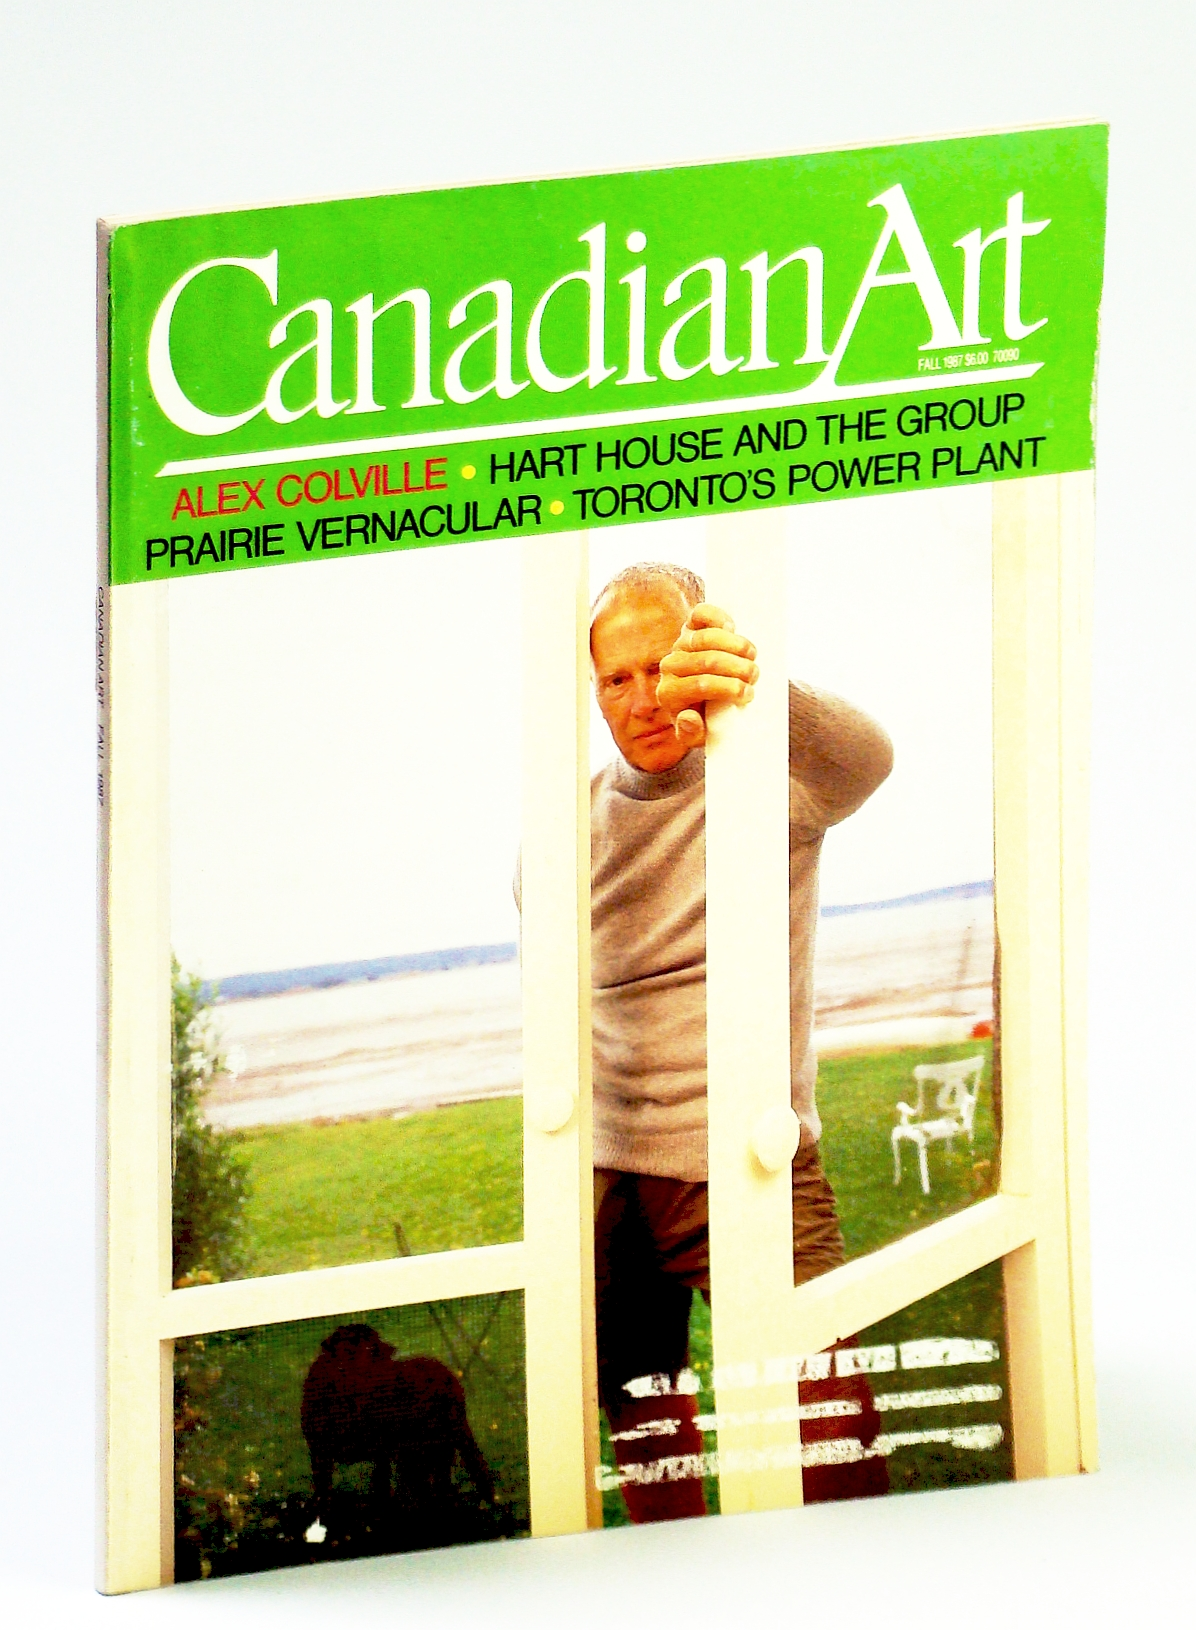 Image for Canadian Art (Magazine), Fall 1987, Volume 4, Number 3 - Alex Colville